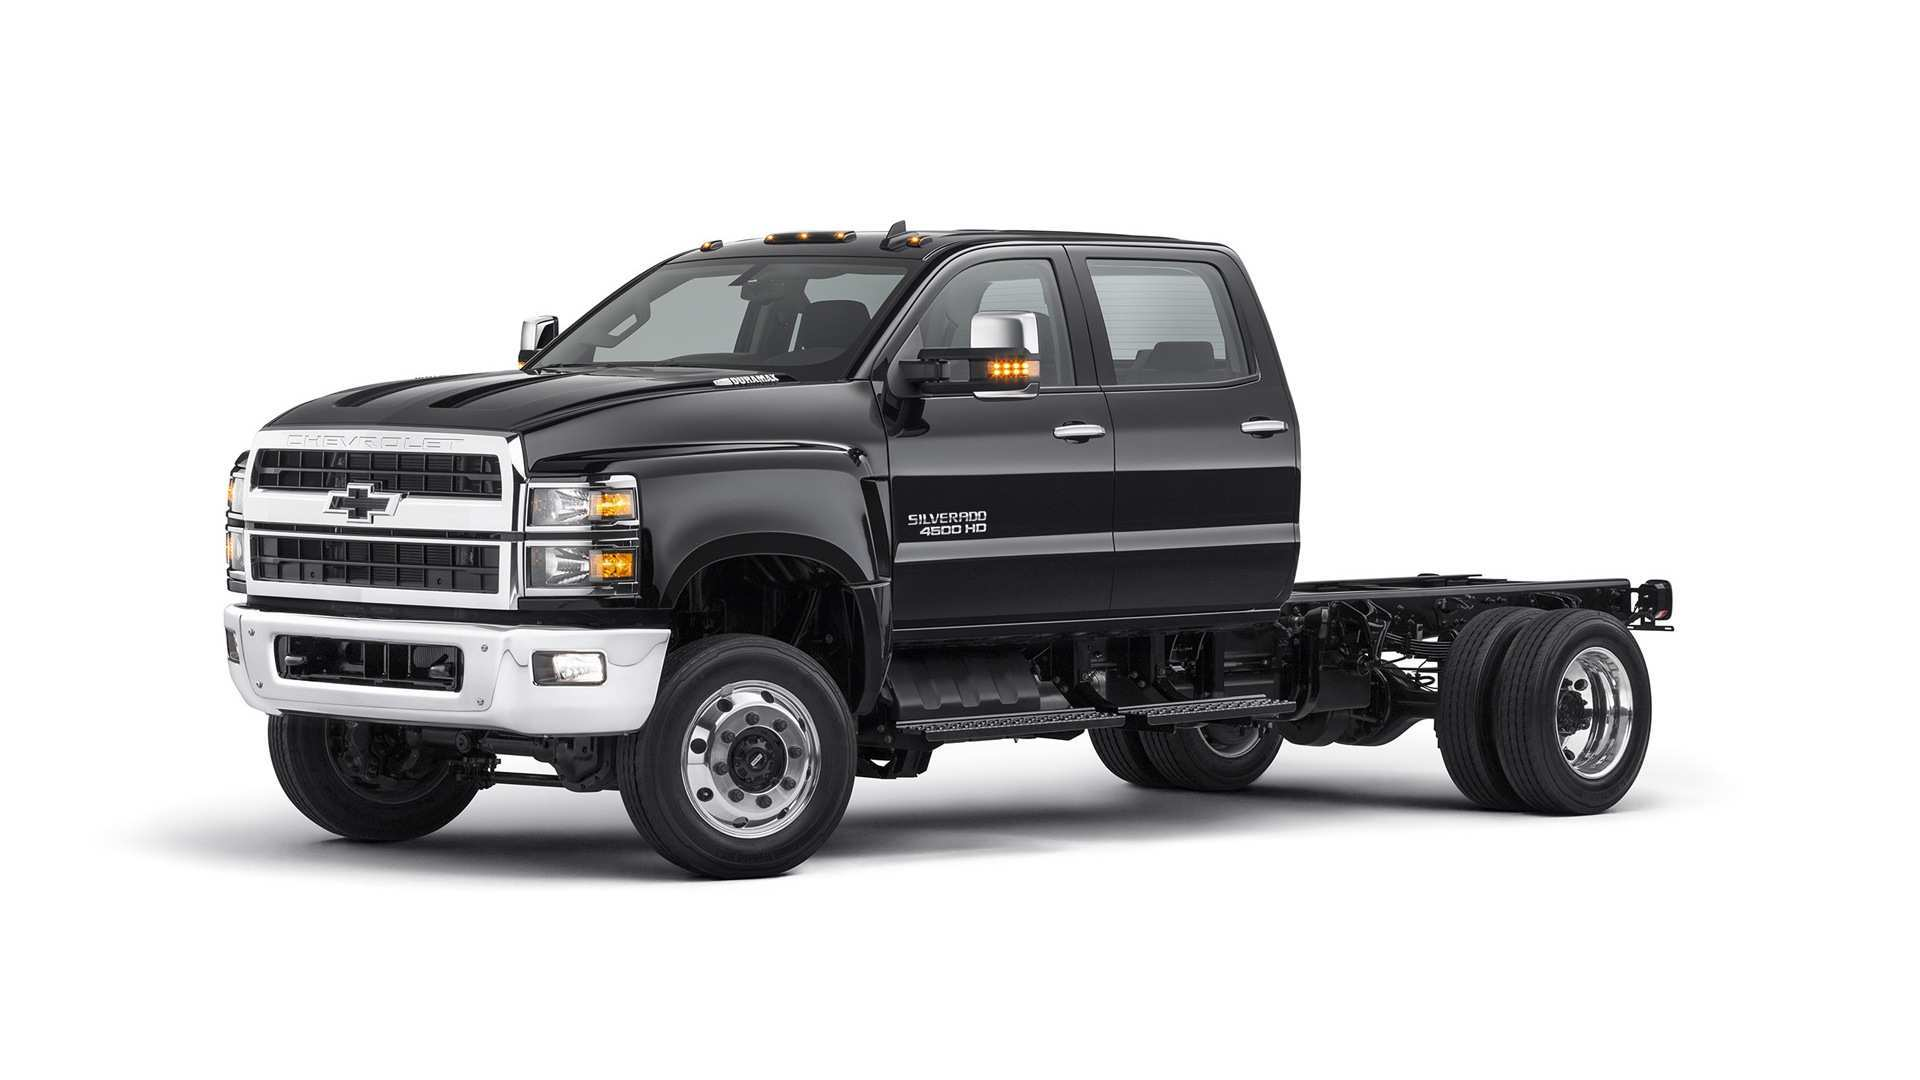 46 Gallery of 2019 Chevrolet Silverado 4500 Hd Prices with 2019 Chevrolet Silverado 4500 Hd